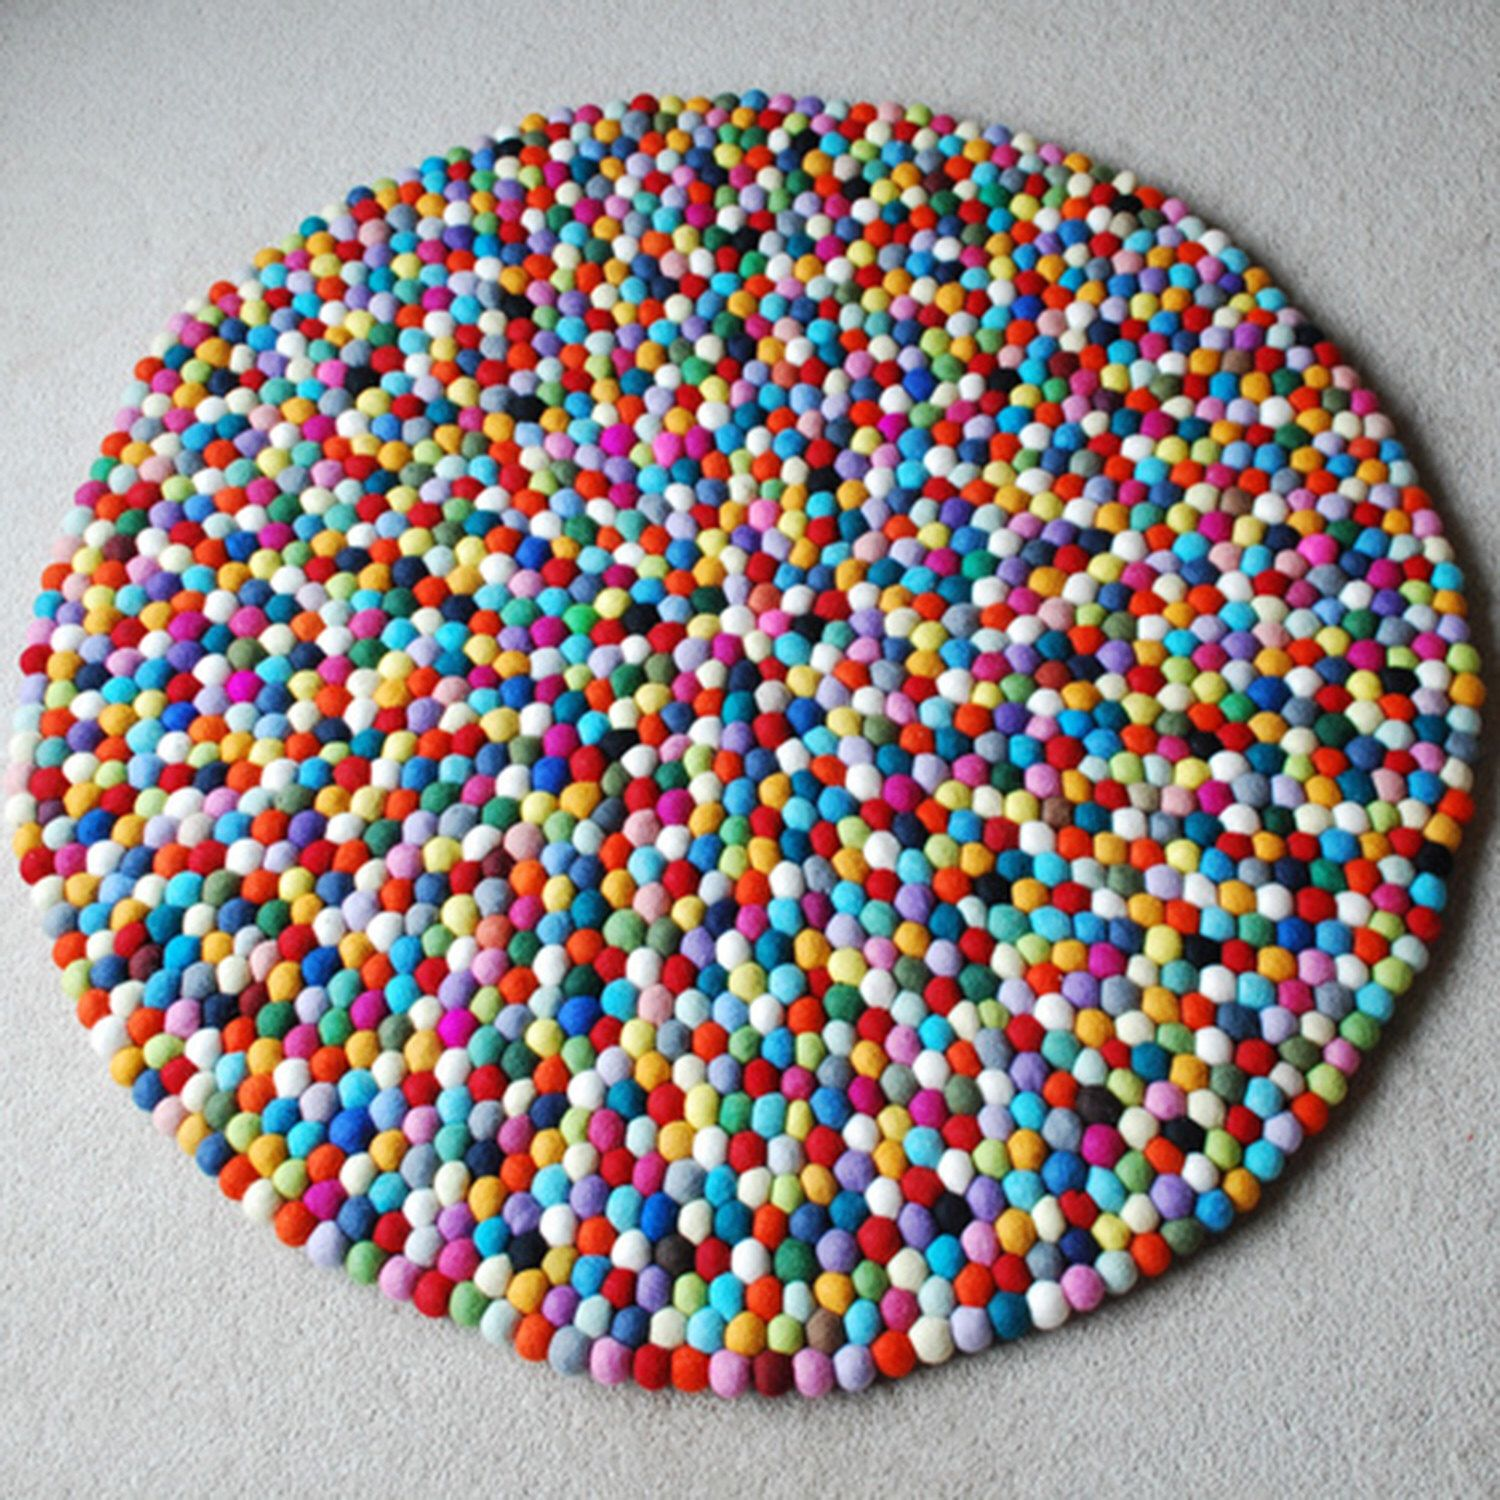 100cm Multicoloured Felt ball Rug Round Felt Rug Kids Bedroom